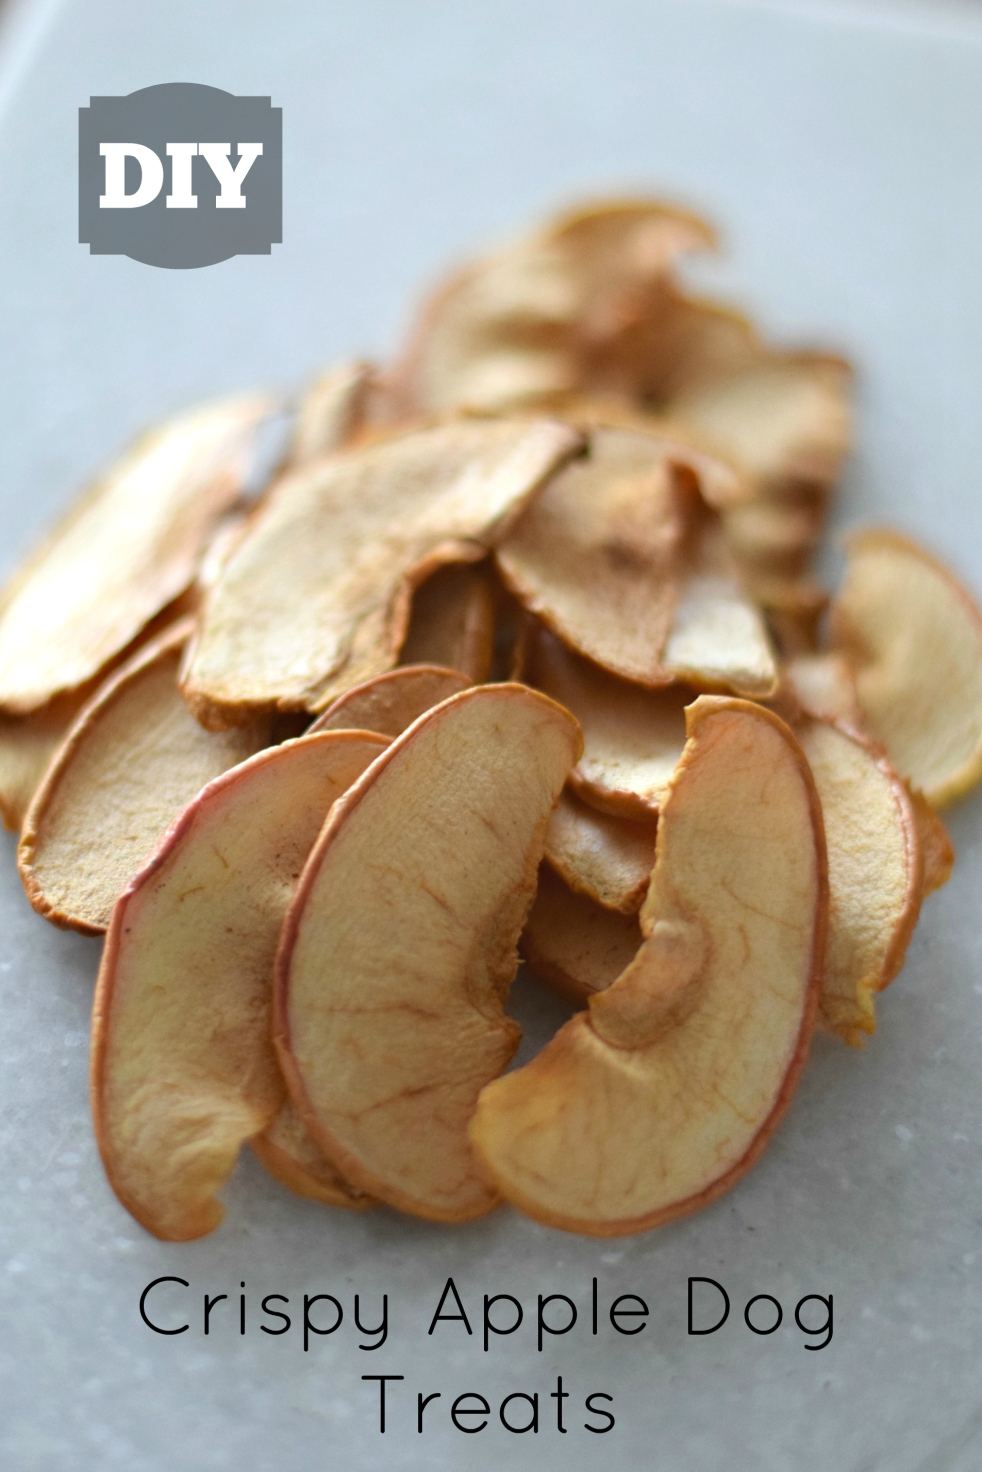 DIY Crispy Apple Dog Treats |www.pearlsandsportsbras.com|